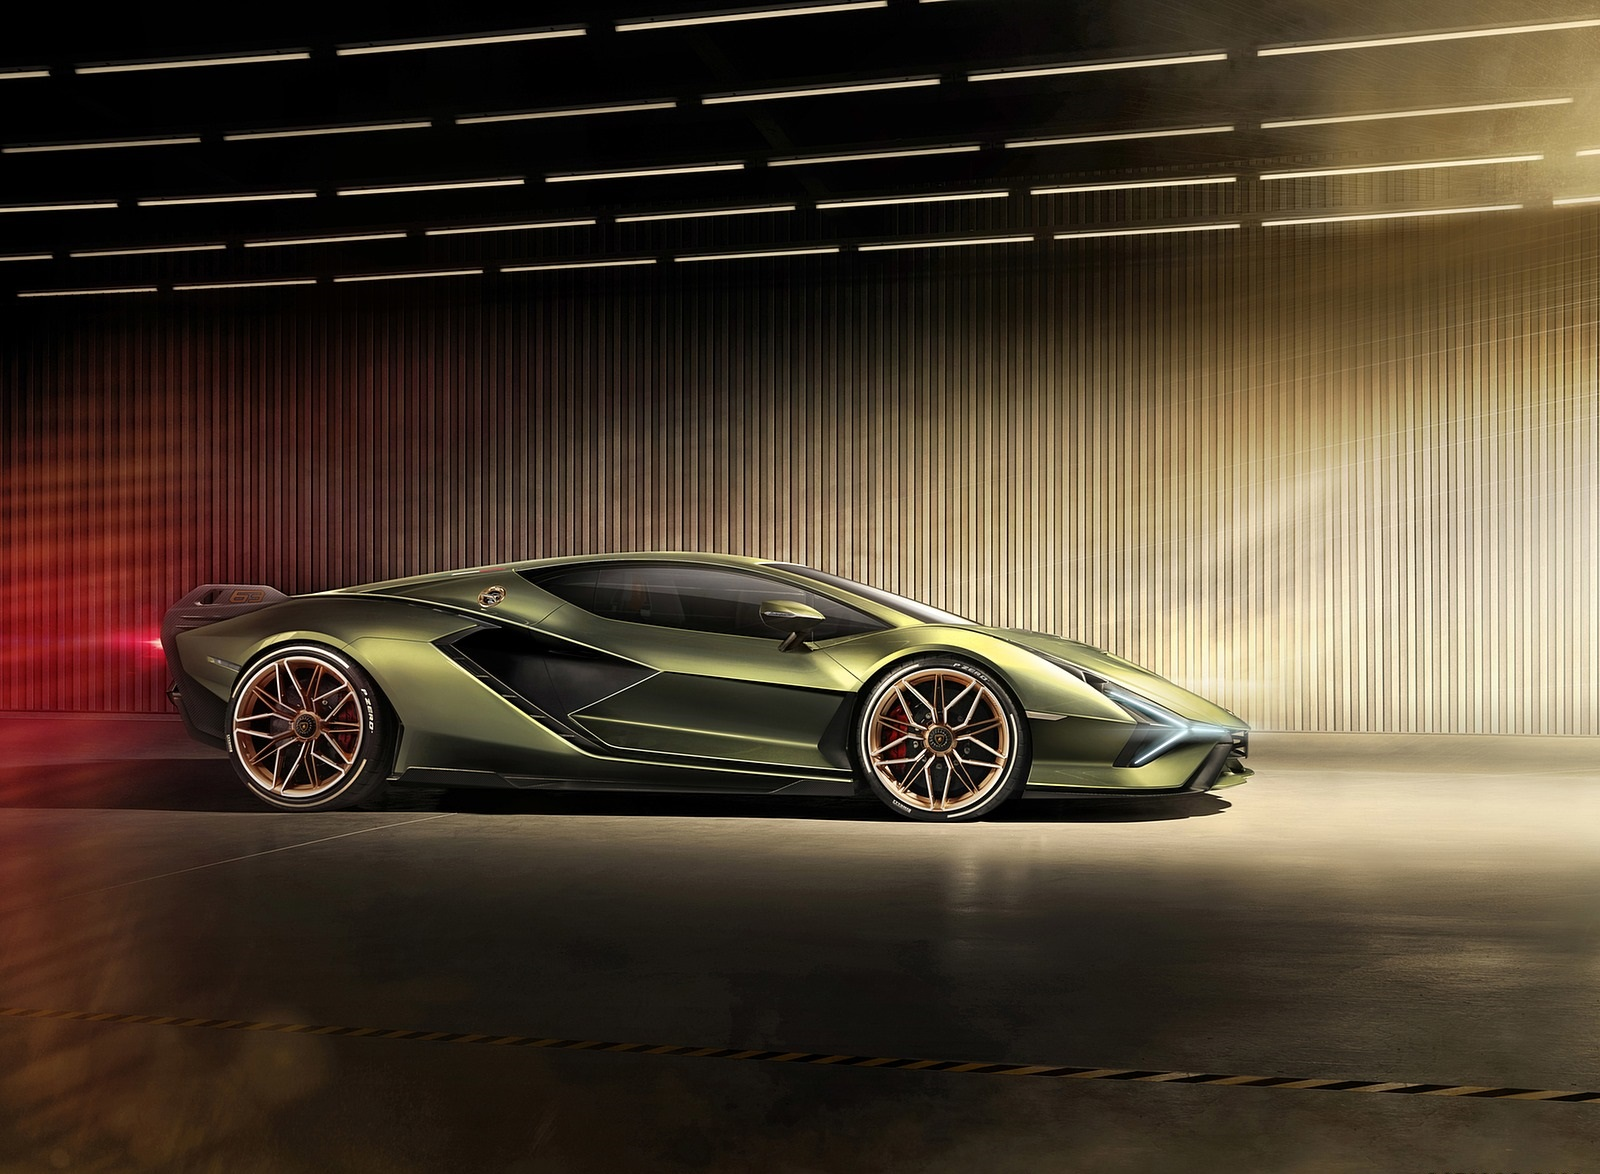 2020 Lamborghini Sián Side Wallpapers #14 of 18